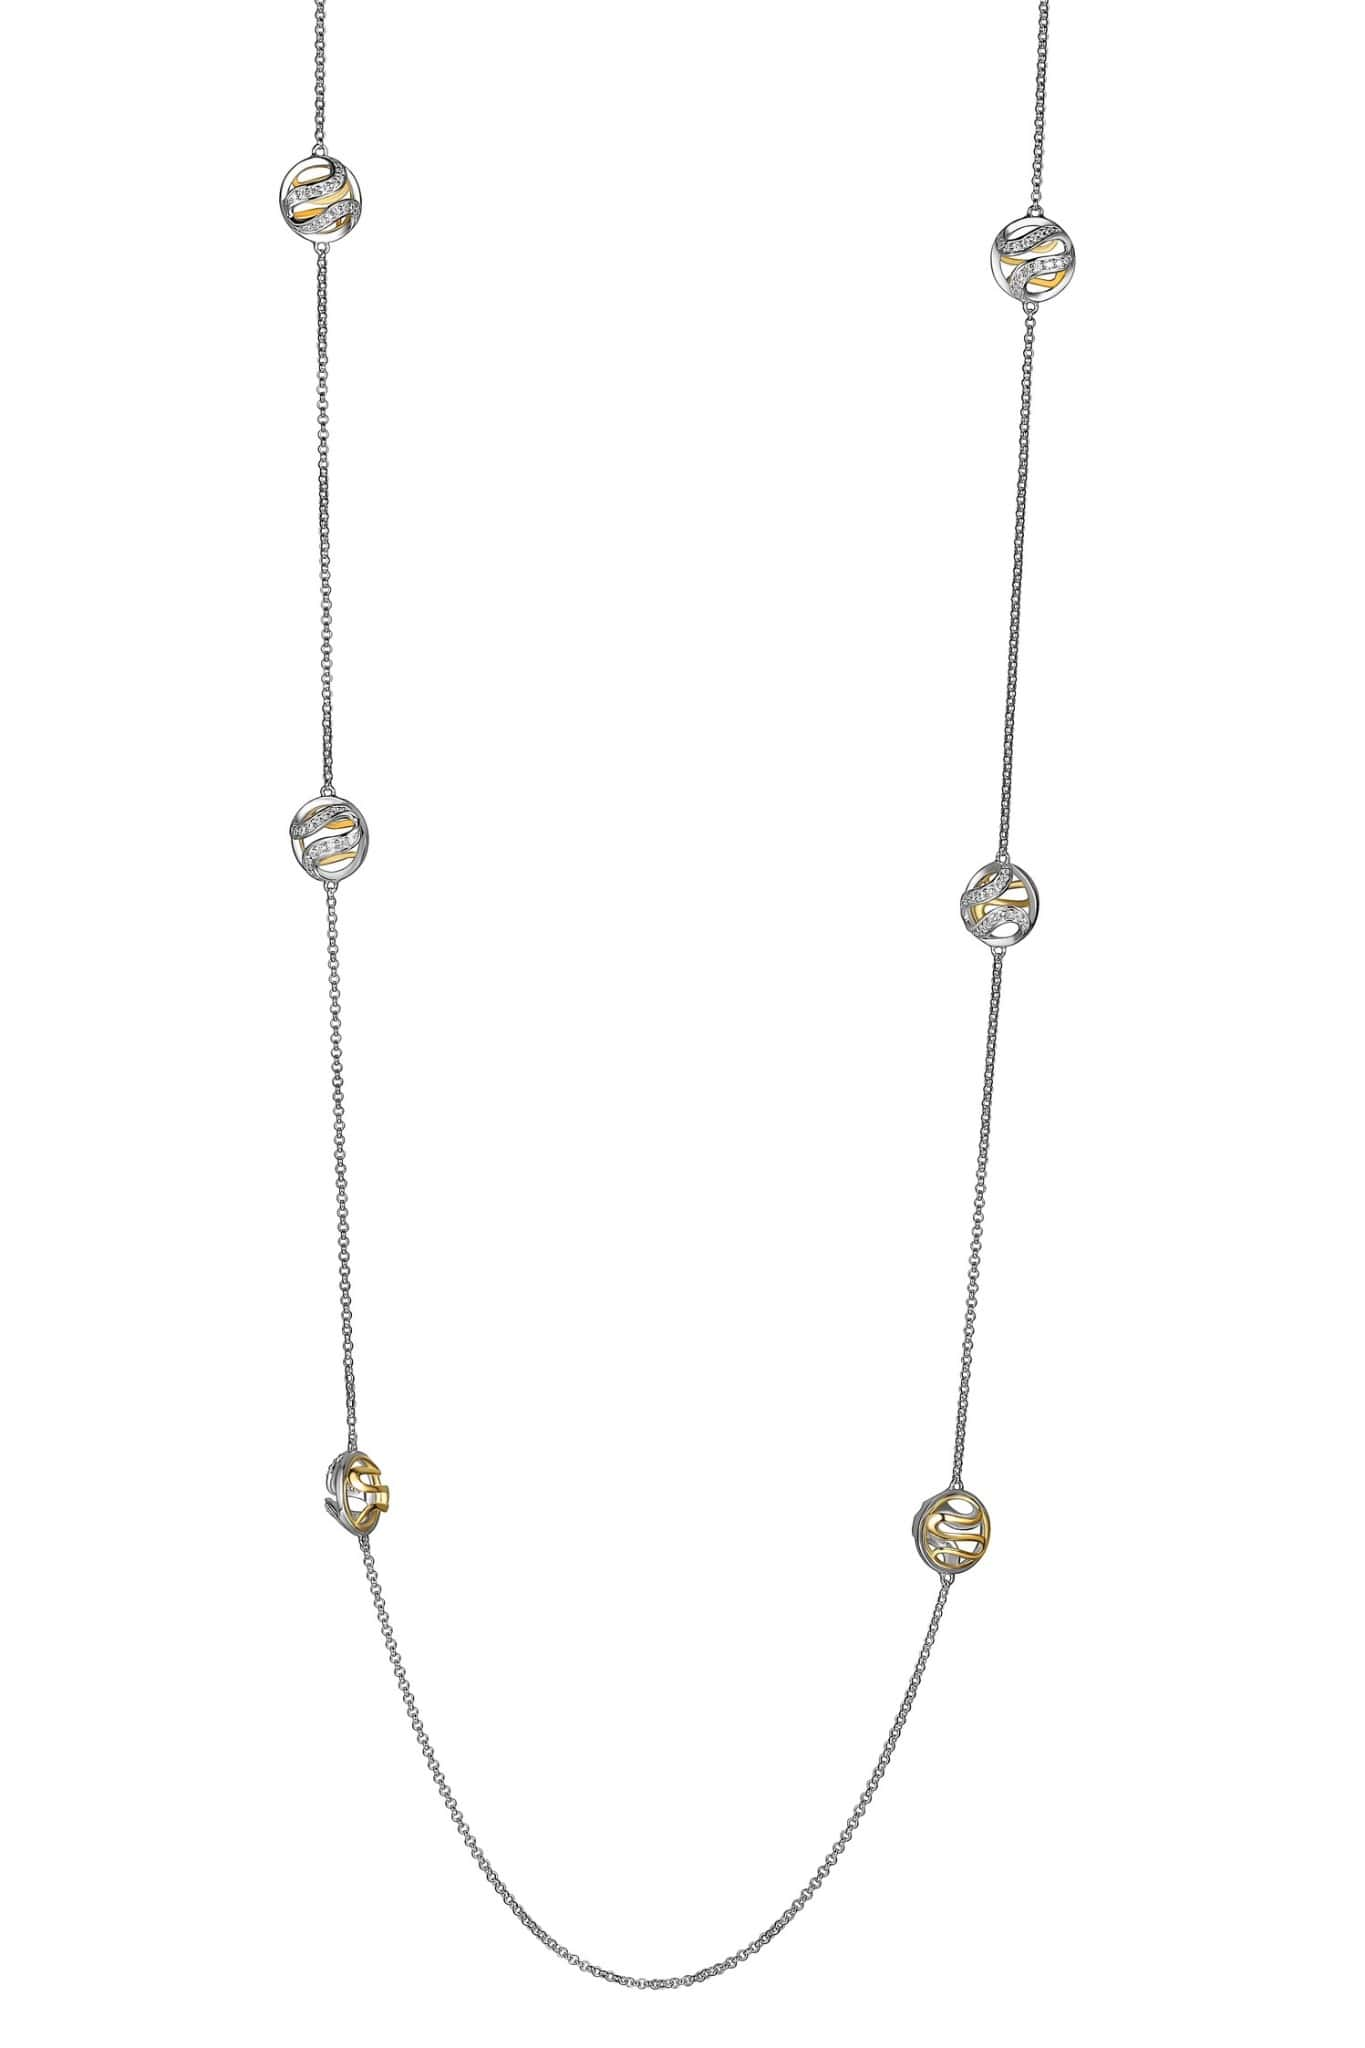 ELLE Moon Shadow 3D Circle Silver Station Necklace at Arman's Jewellers